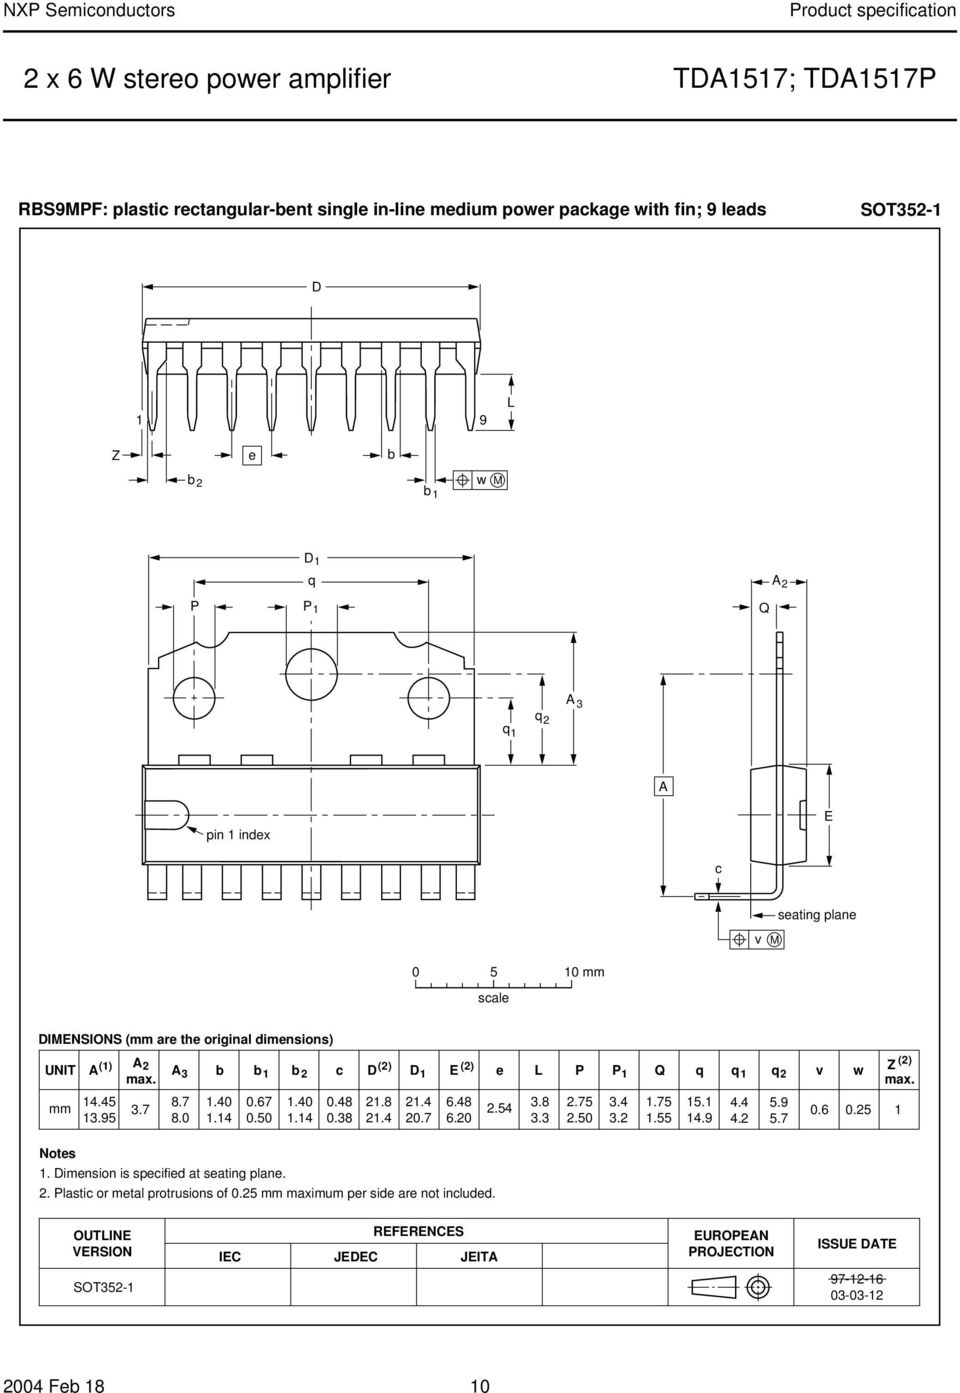 Integrated Circuits Data Sheet Tda1517 Tda1517p 2 X 6 W Stereo Mono Btl Audio Amplifier With Dc Volume C Nxp 8 214 648 37 254 38 275 34 175 151 44 59 06 025 1 1395